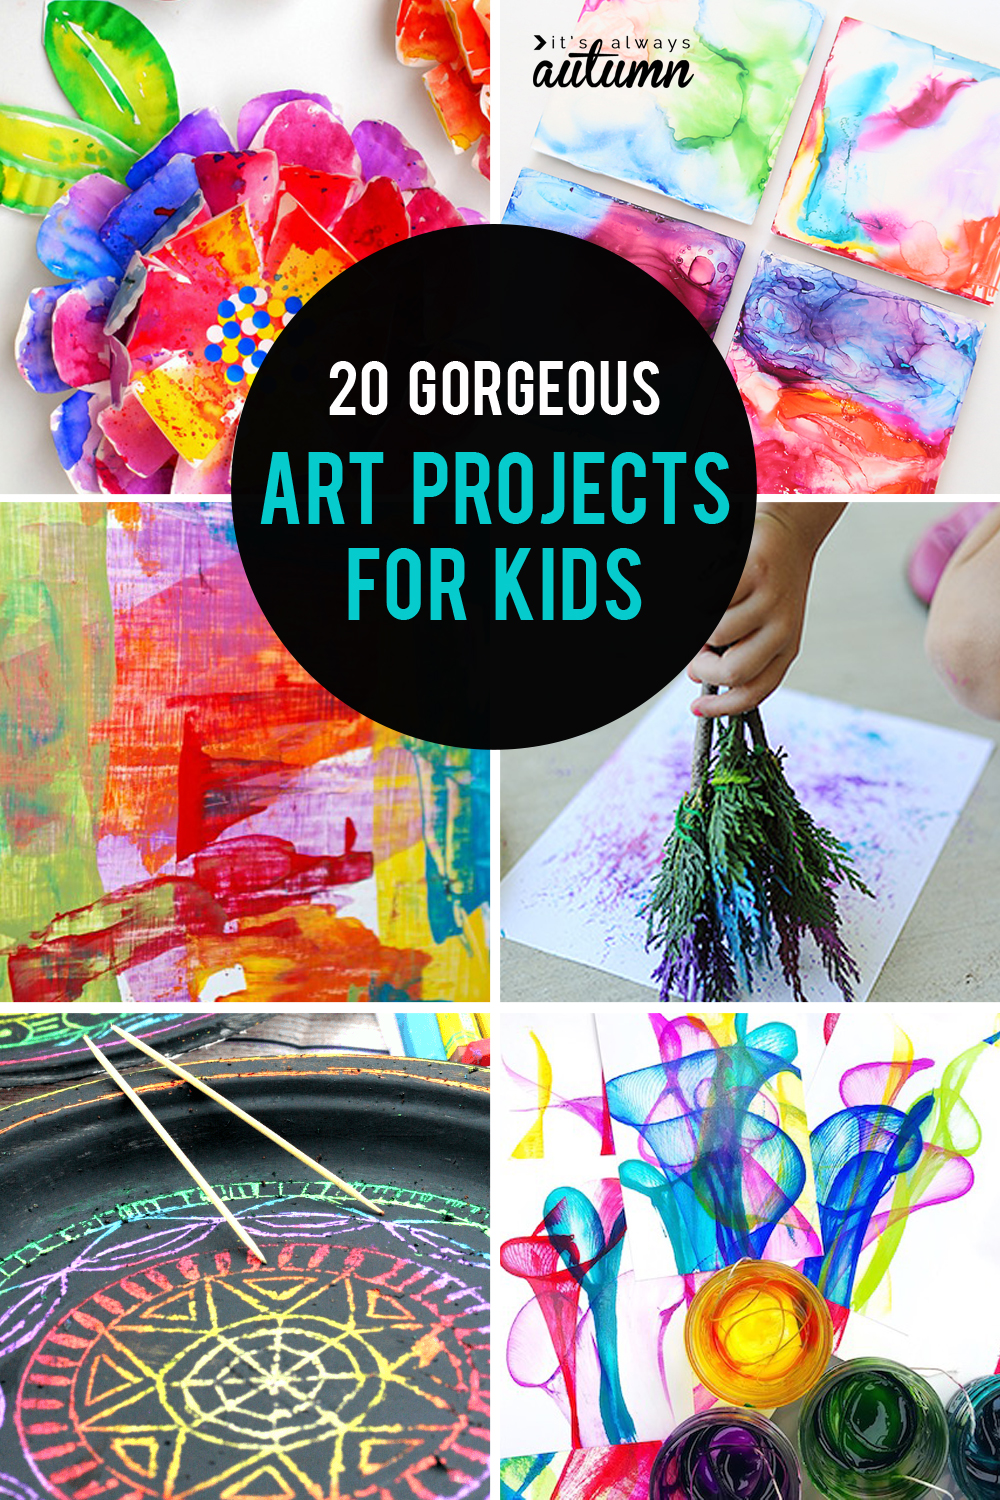 Collage of 20 gorgeous art projects for kids